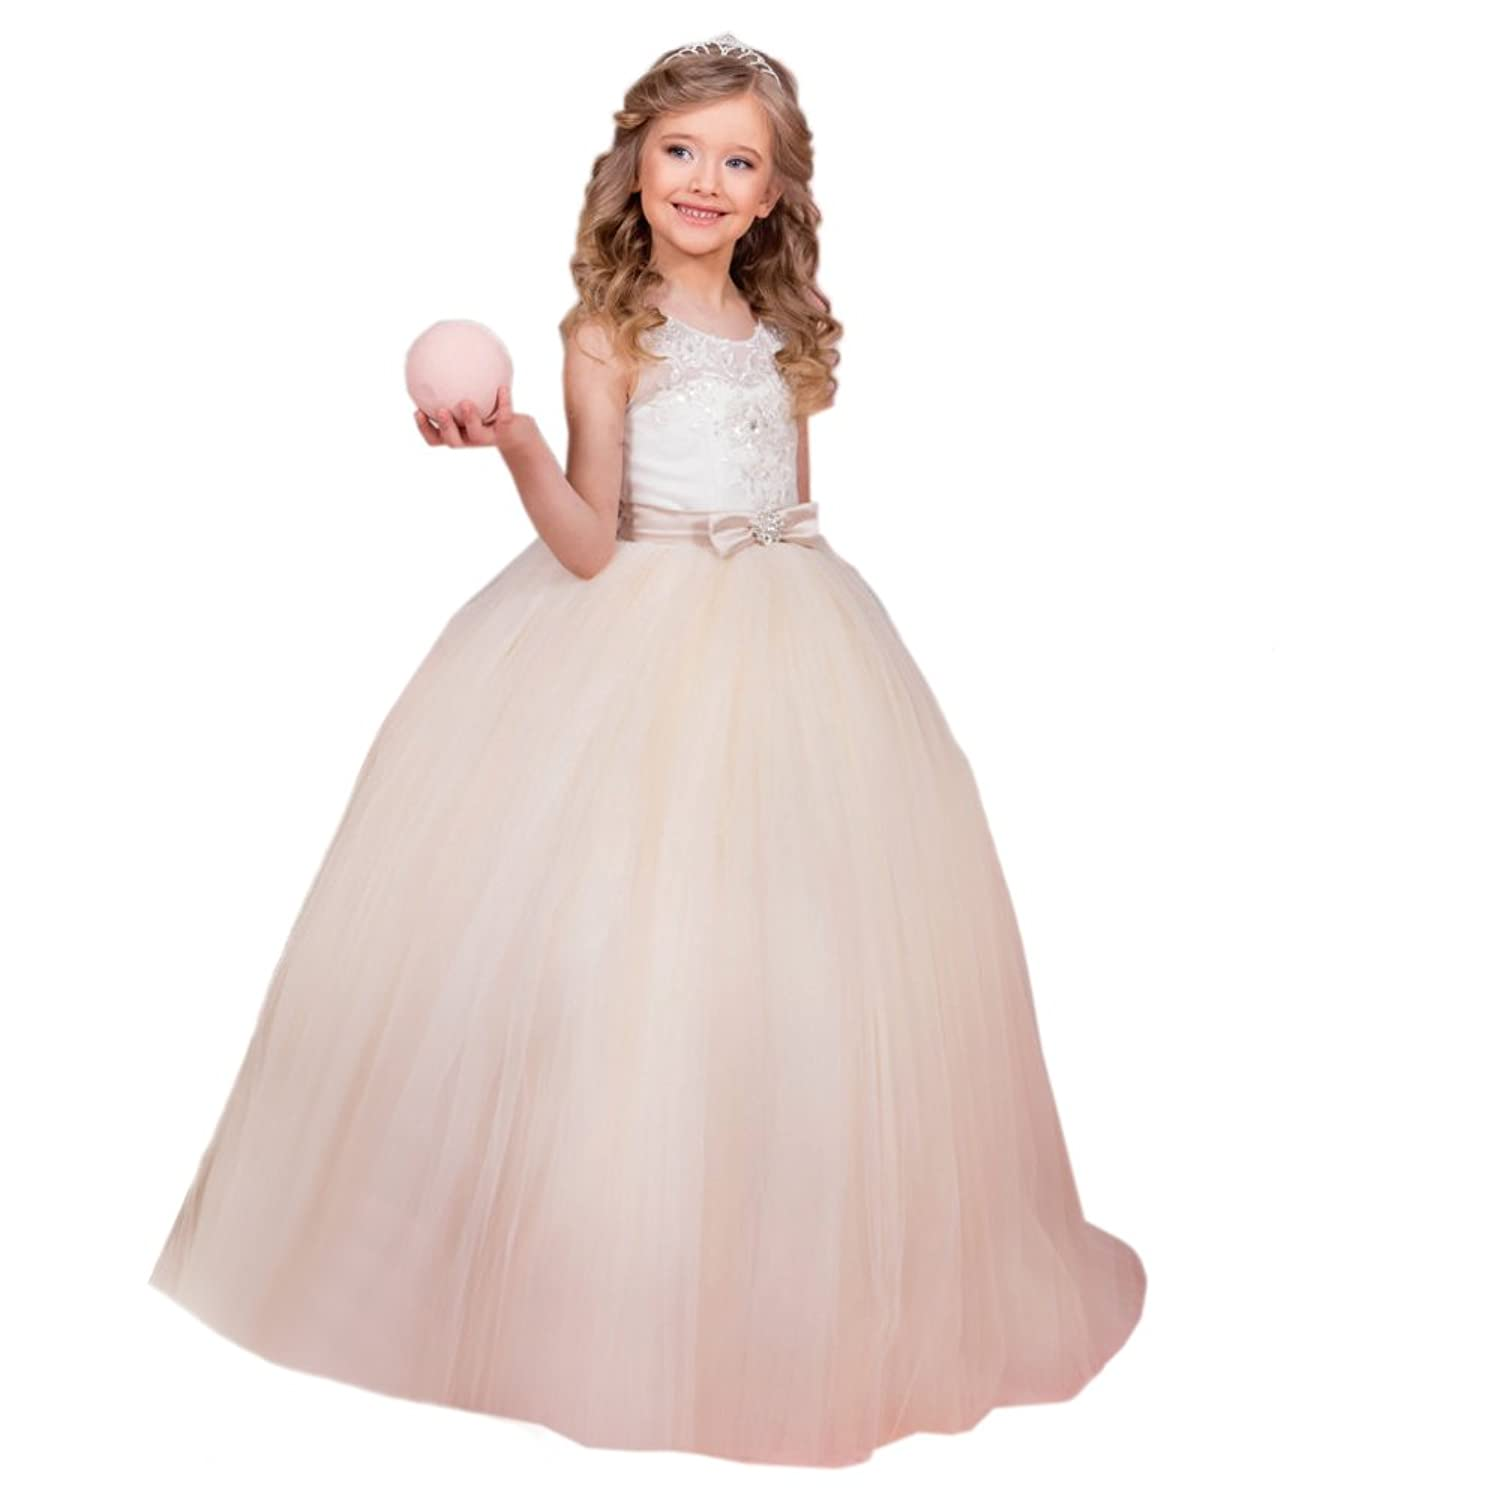 Abaowedding Baby Girl Sequins Sleeveless Bow Belt Long Baptism Christening Gown Dresses